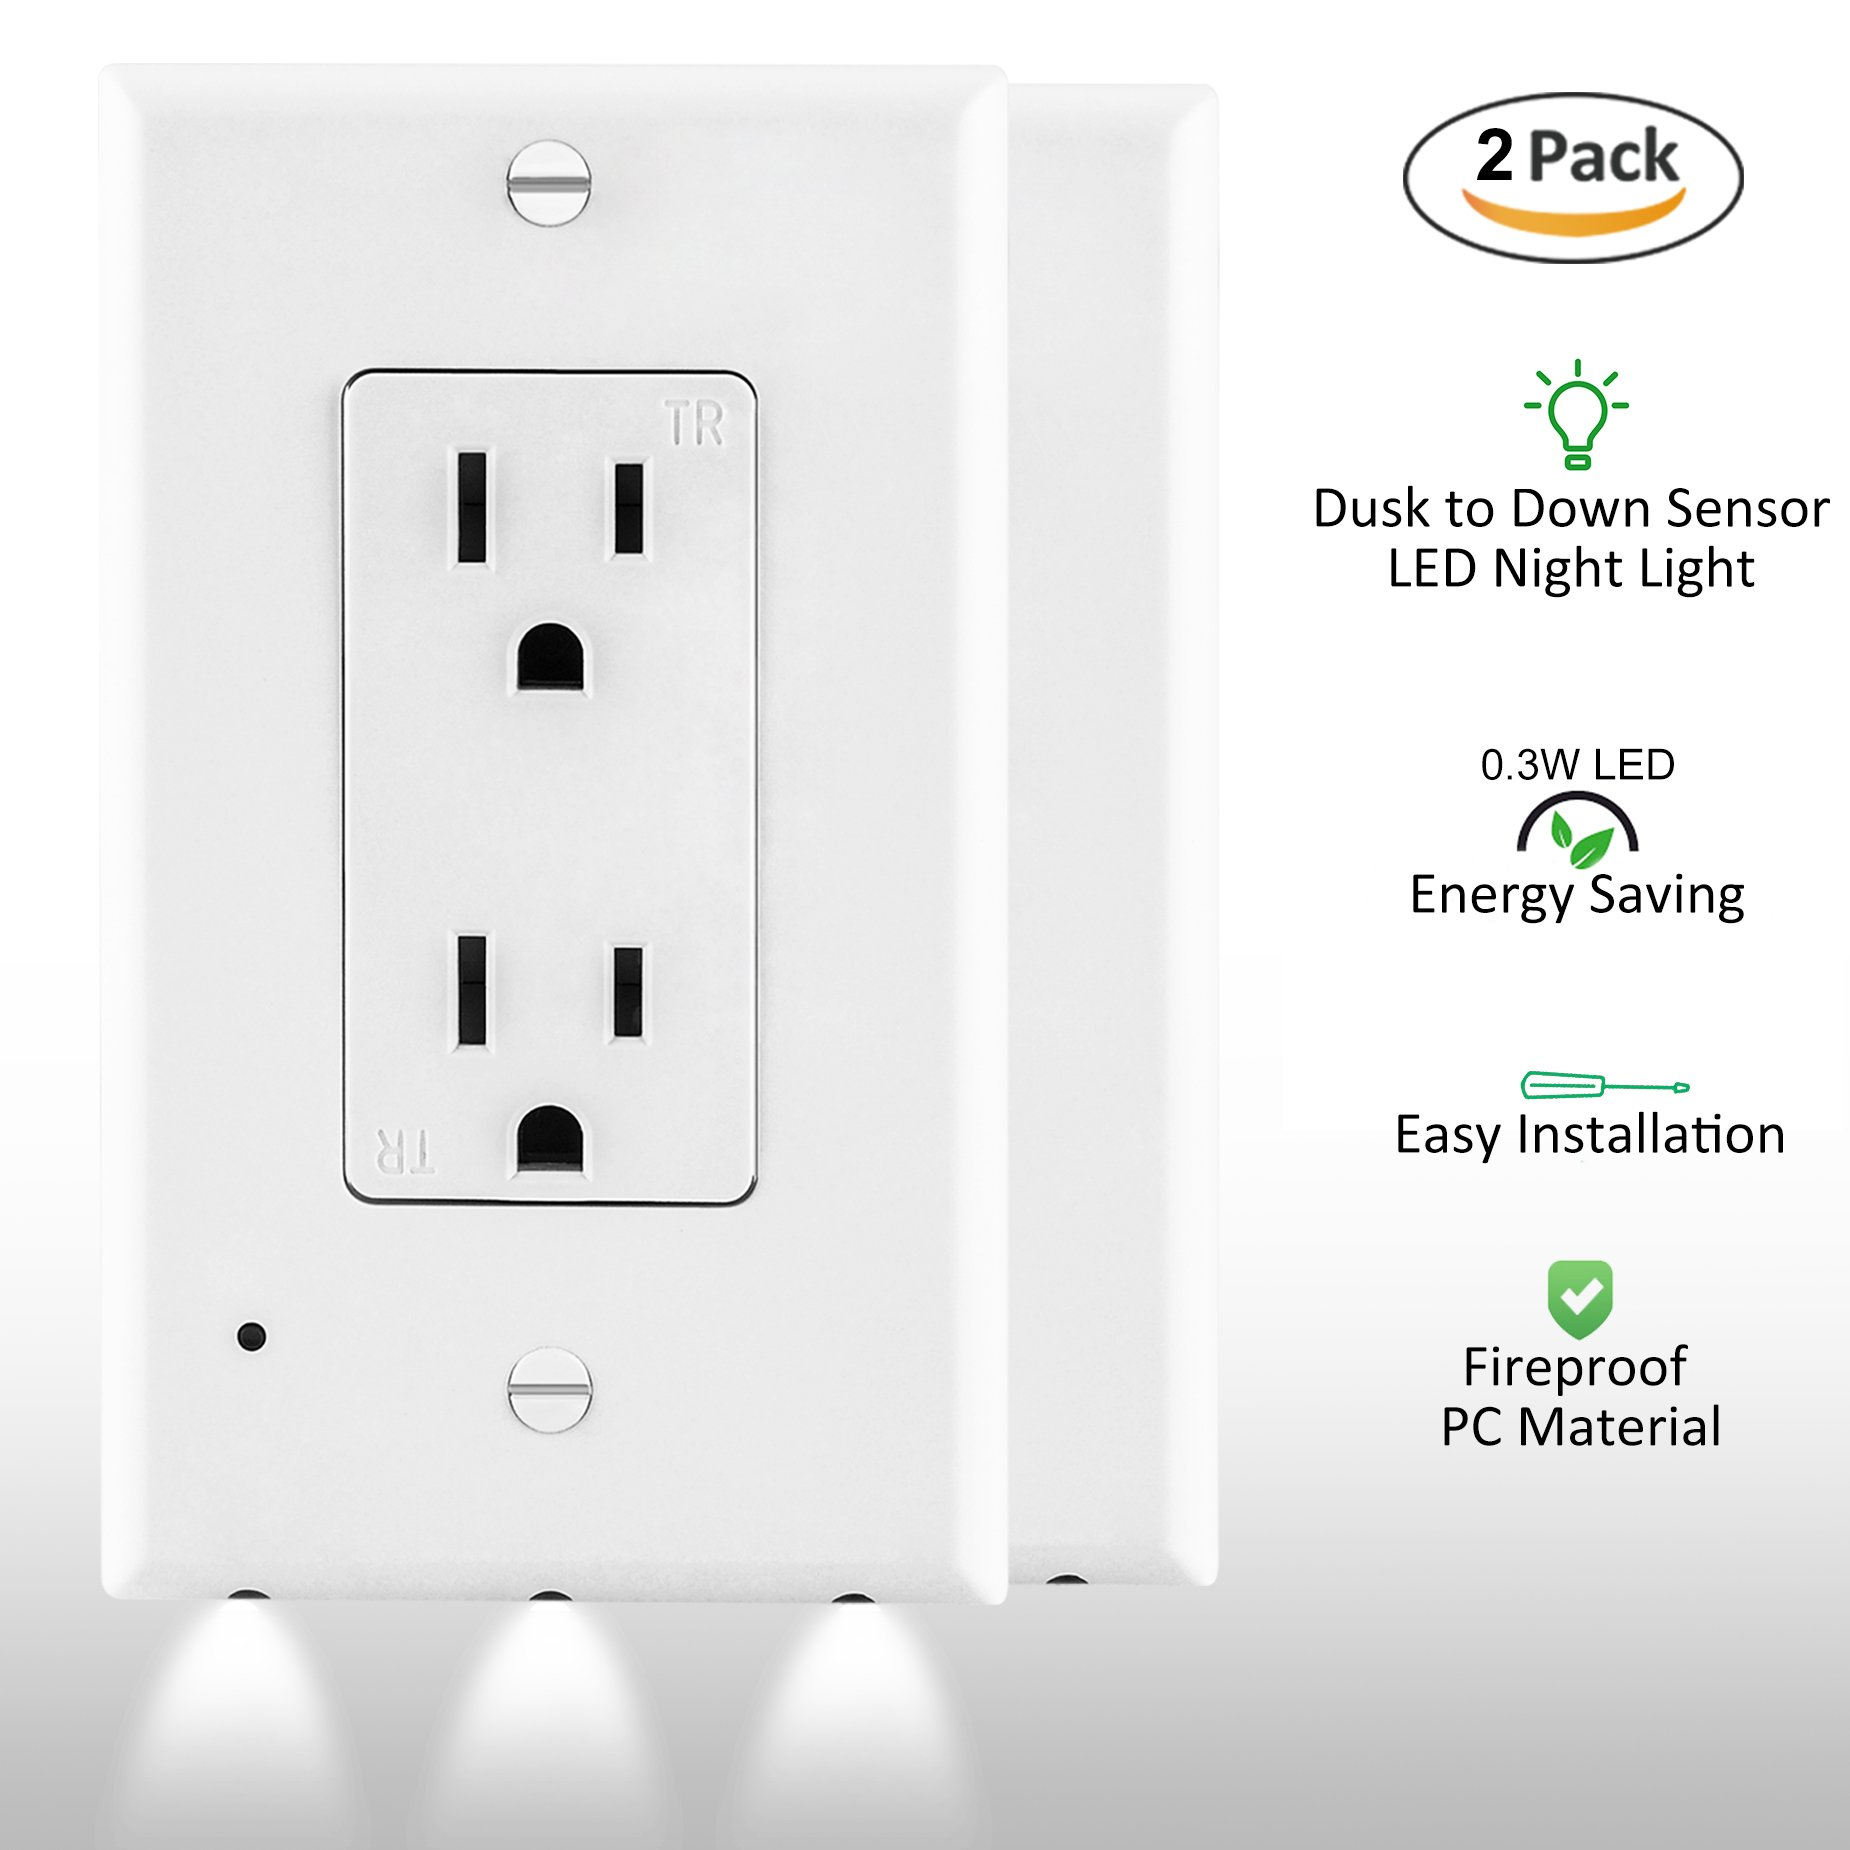 ELECTEK Wall Plate Outlet Cover with LED Sensor Night Light for Décor Receptacle, Easy Installation, White, Pack of 2